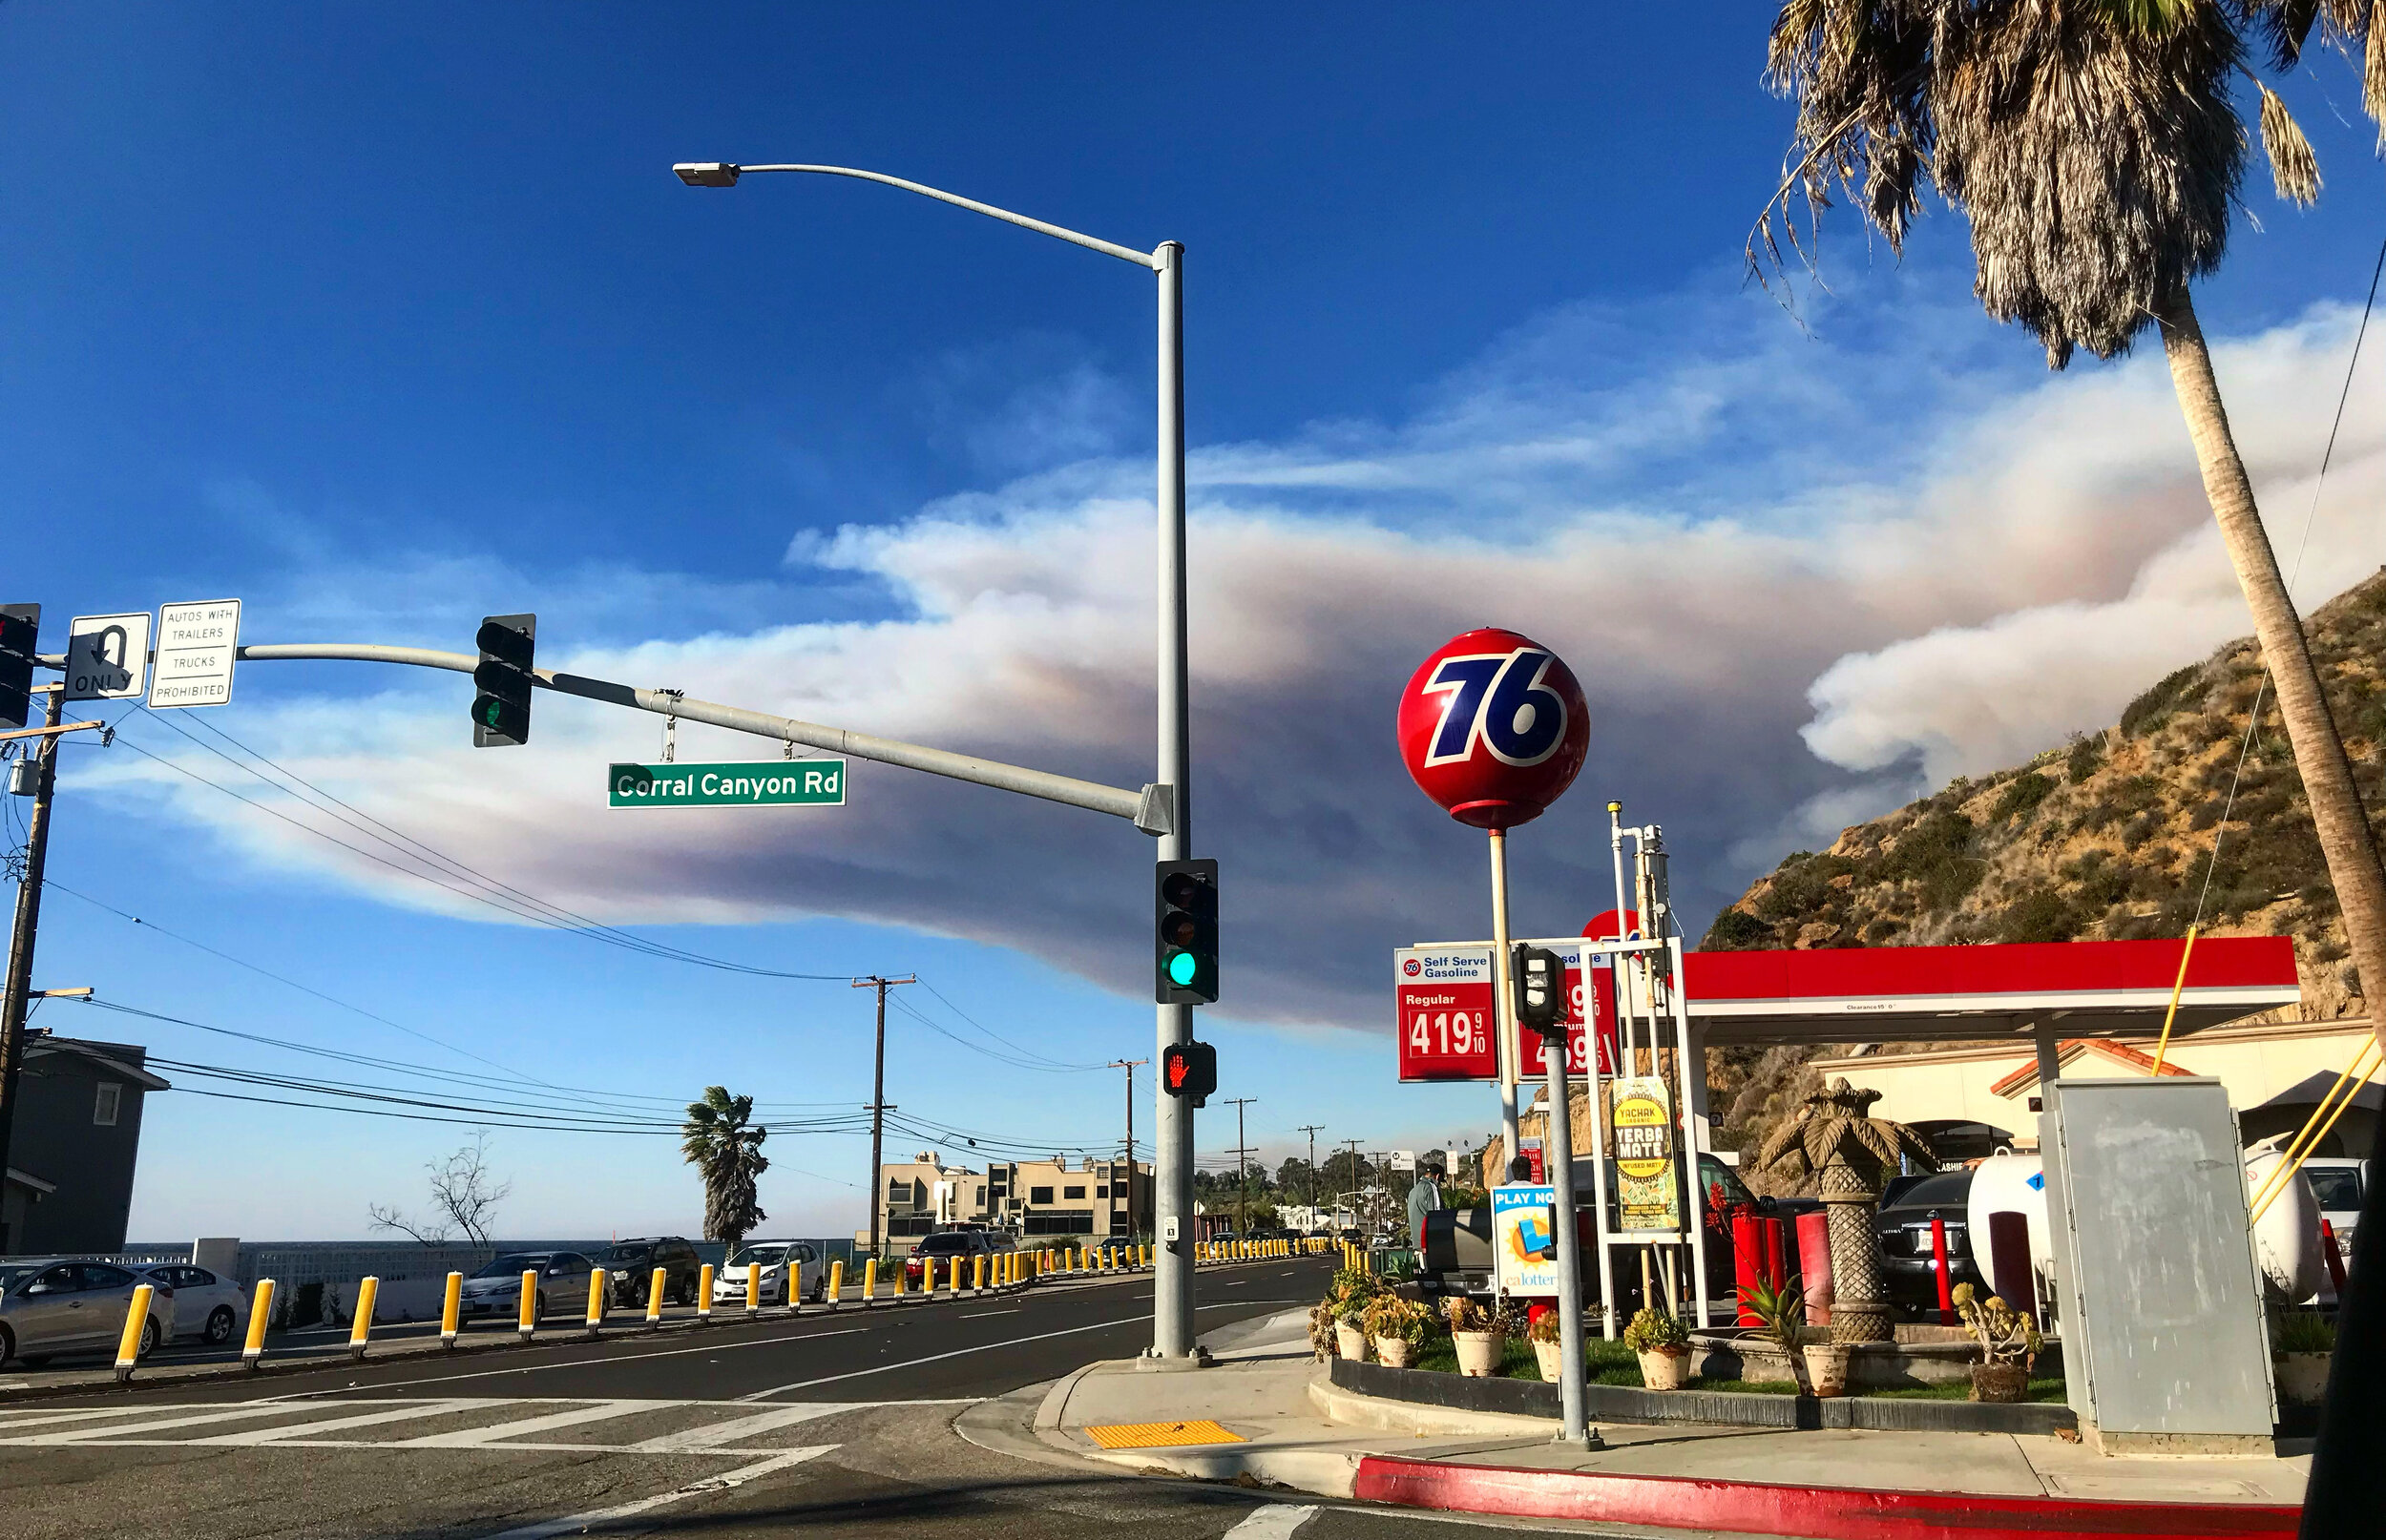 8:25am- November 9, 2018 - Intersection of PCH and Corral Canyon as we started our journey evacuating MALIBU (📷: Lisa Butala Zabaldo)